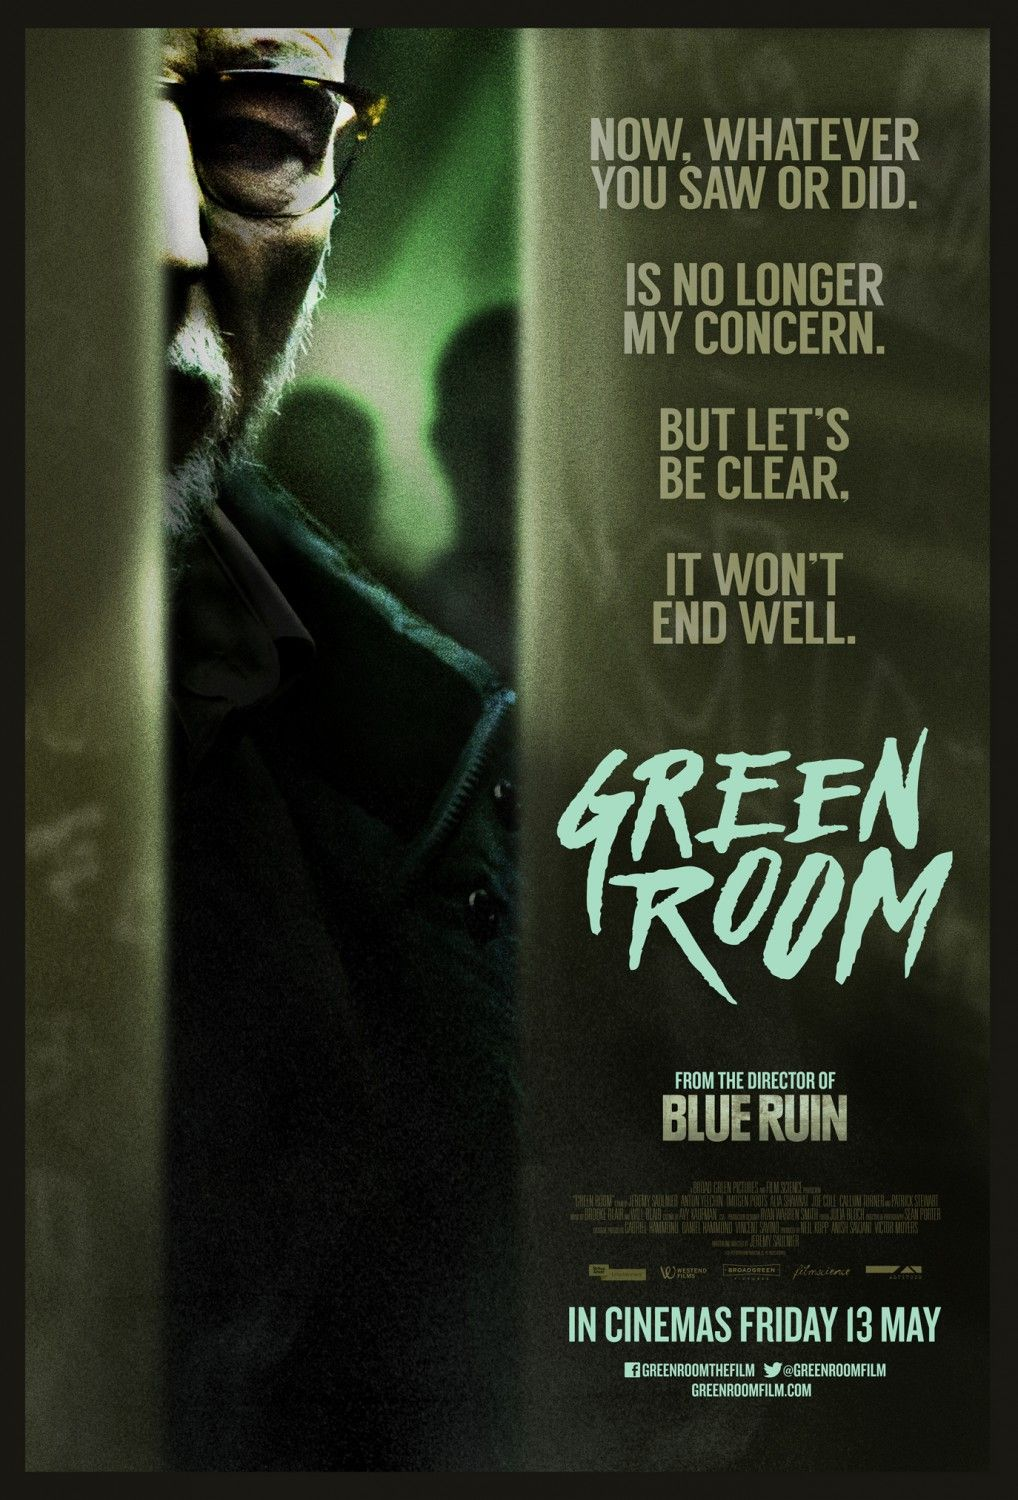 Filme Skinhead intended for green room. really great seige / thriller / horror movie. the more